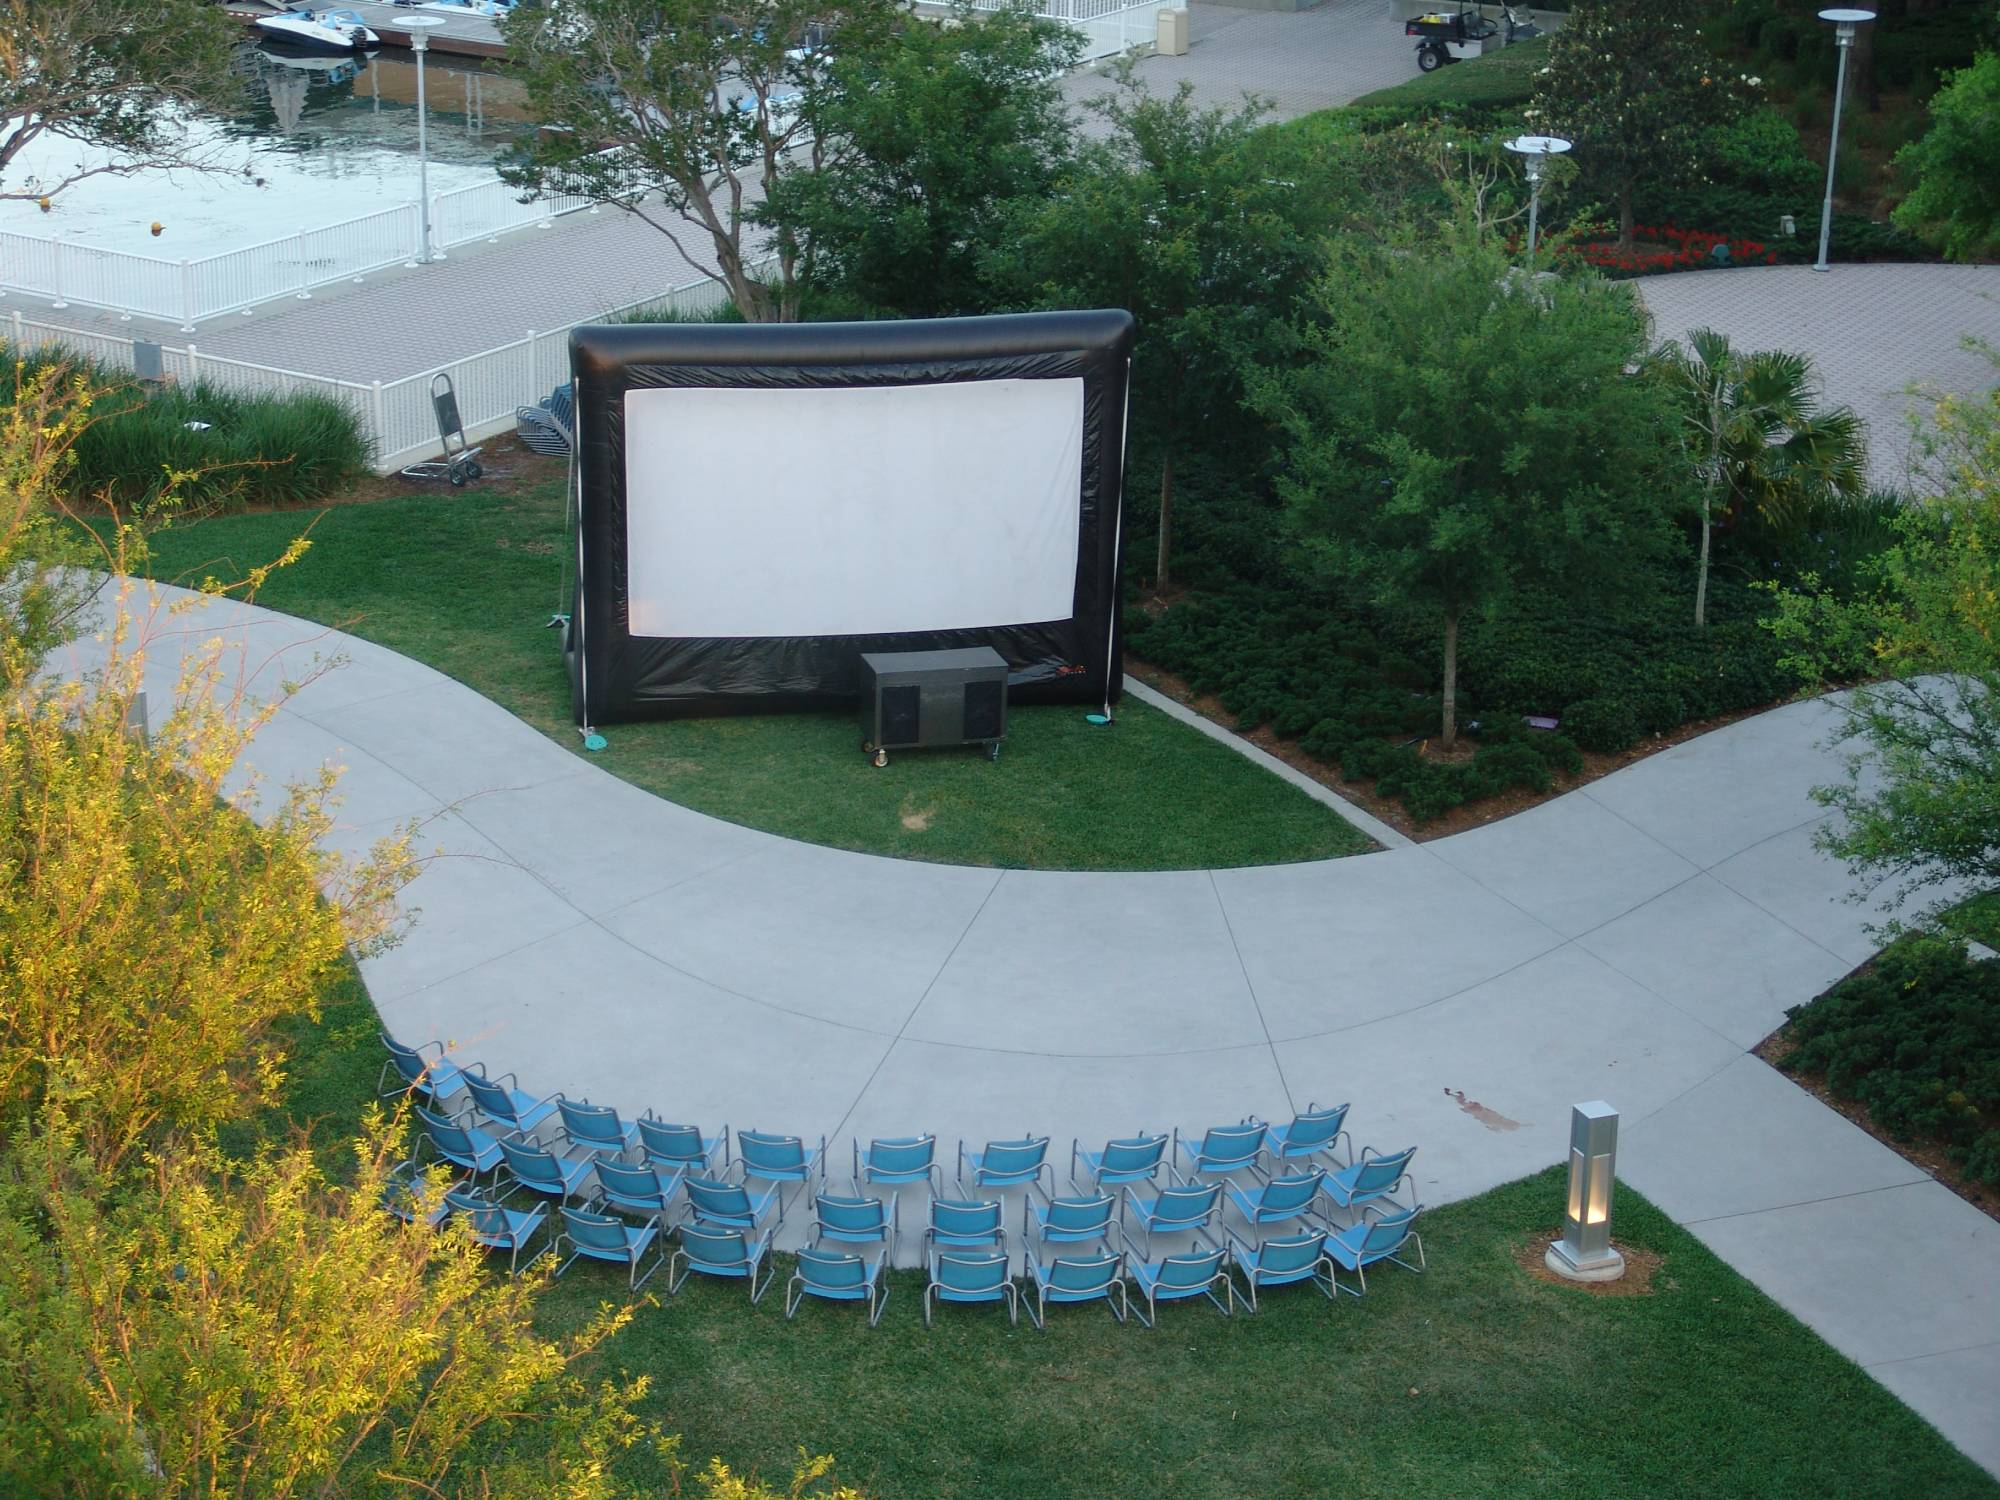 Contemporary - big movie screen